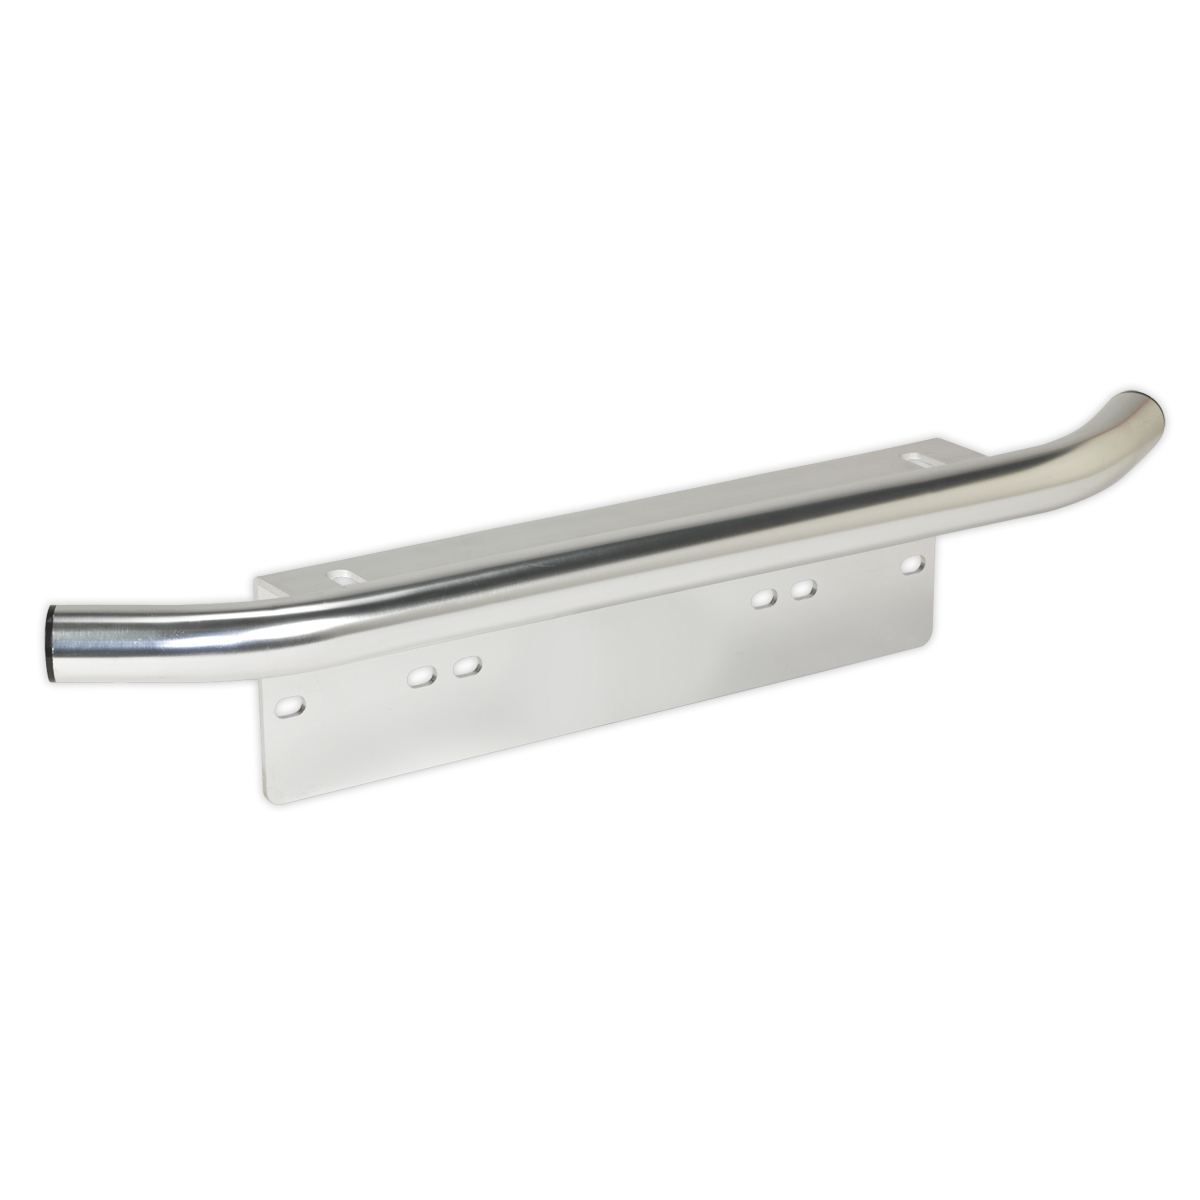 Driving Light Mounting Bracket with Bar - Universal Number Plate Fitment